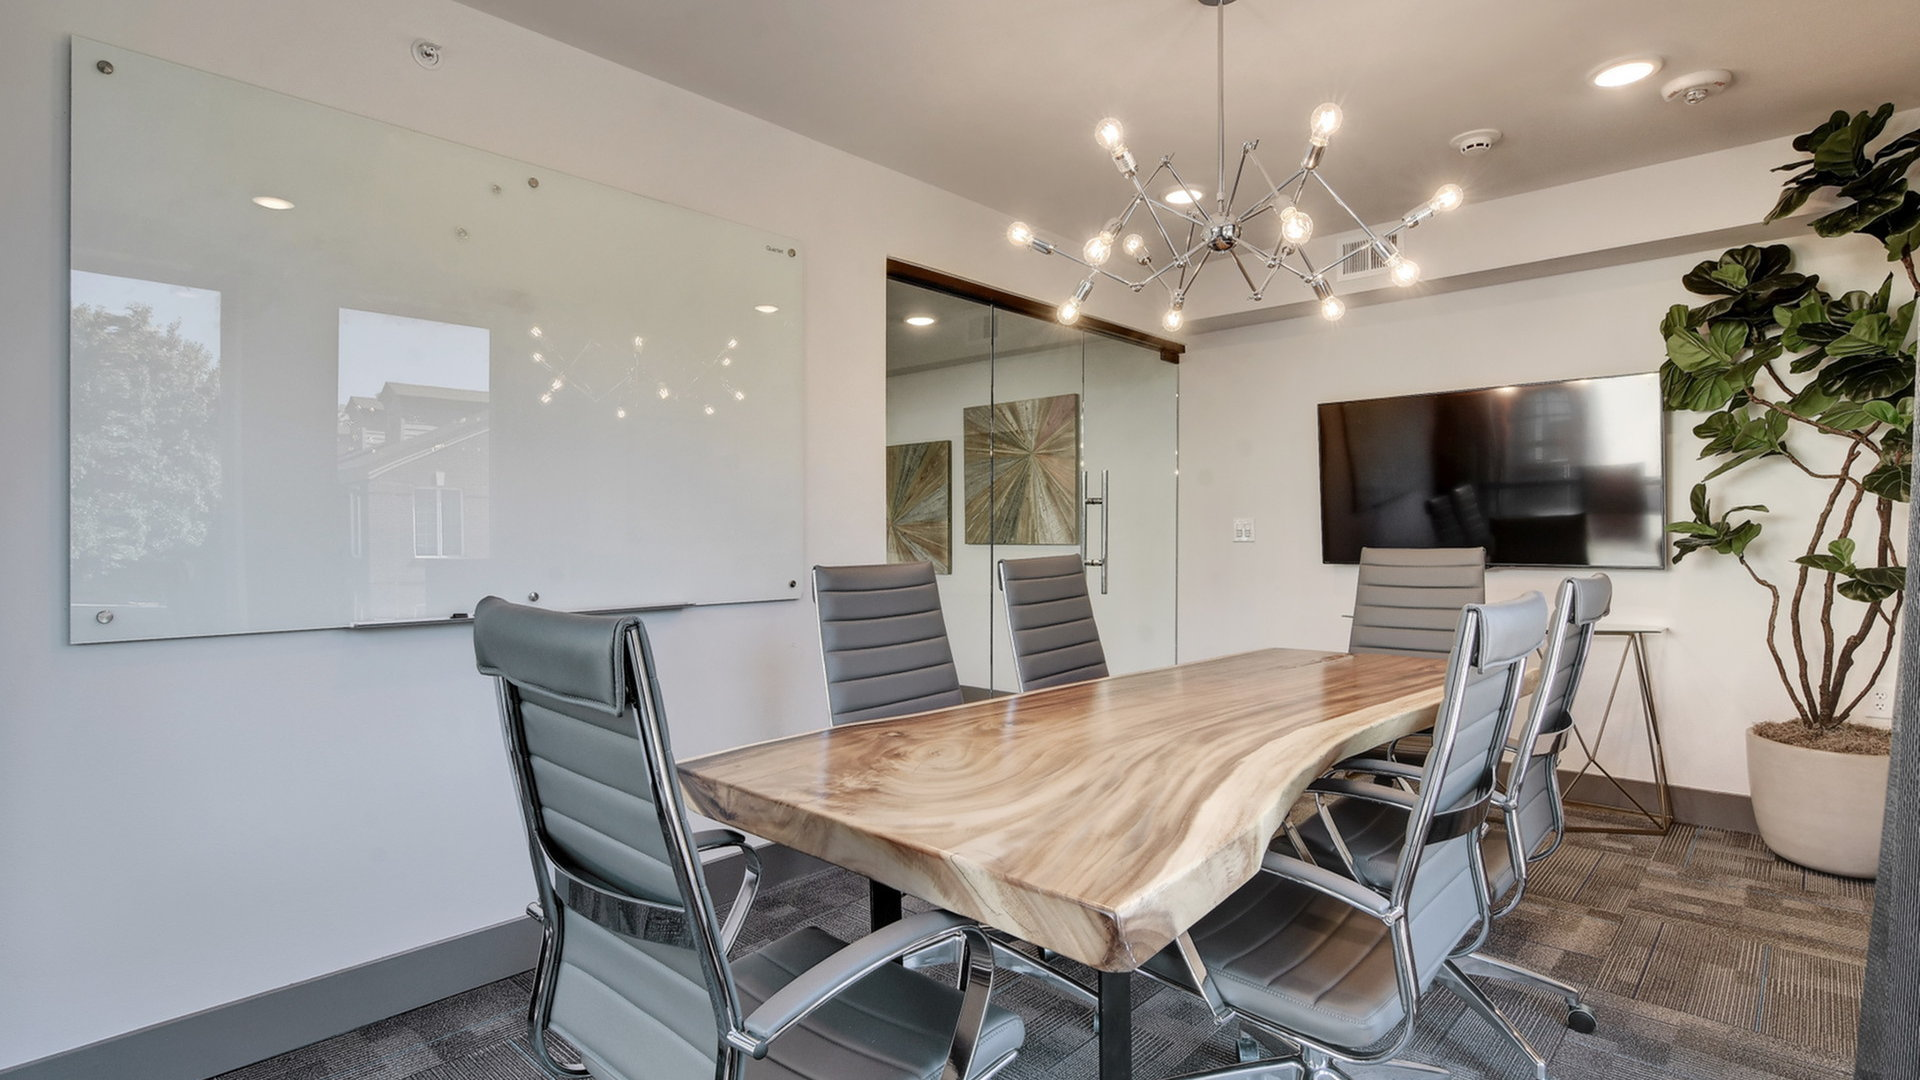 2 Bedroom Apartments Austin Tx Under 1000 - Search your ...